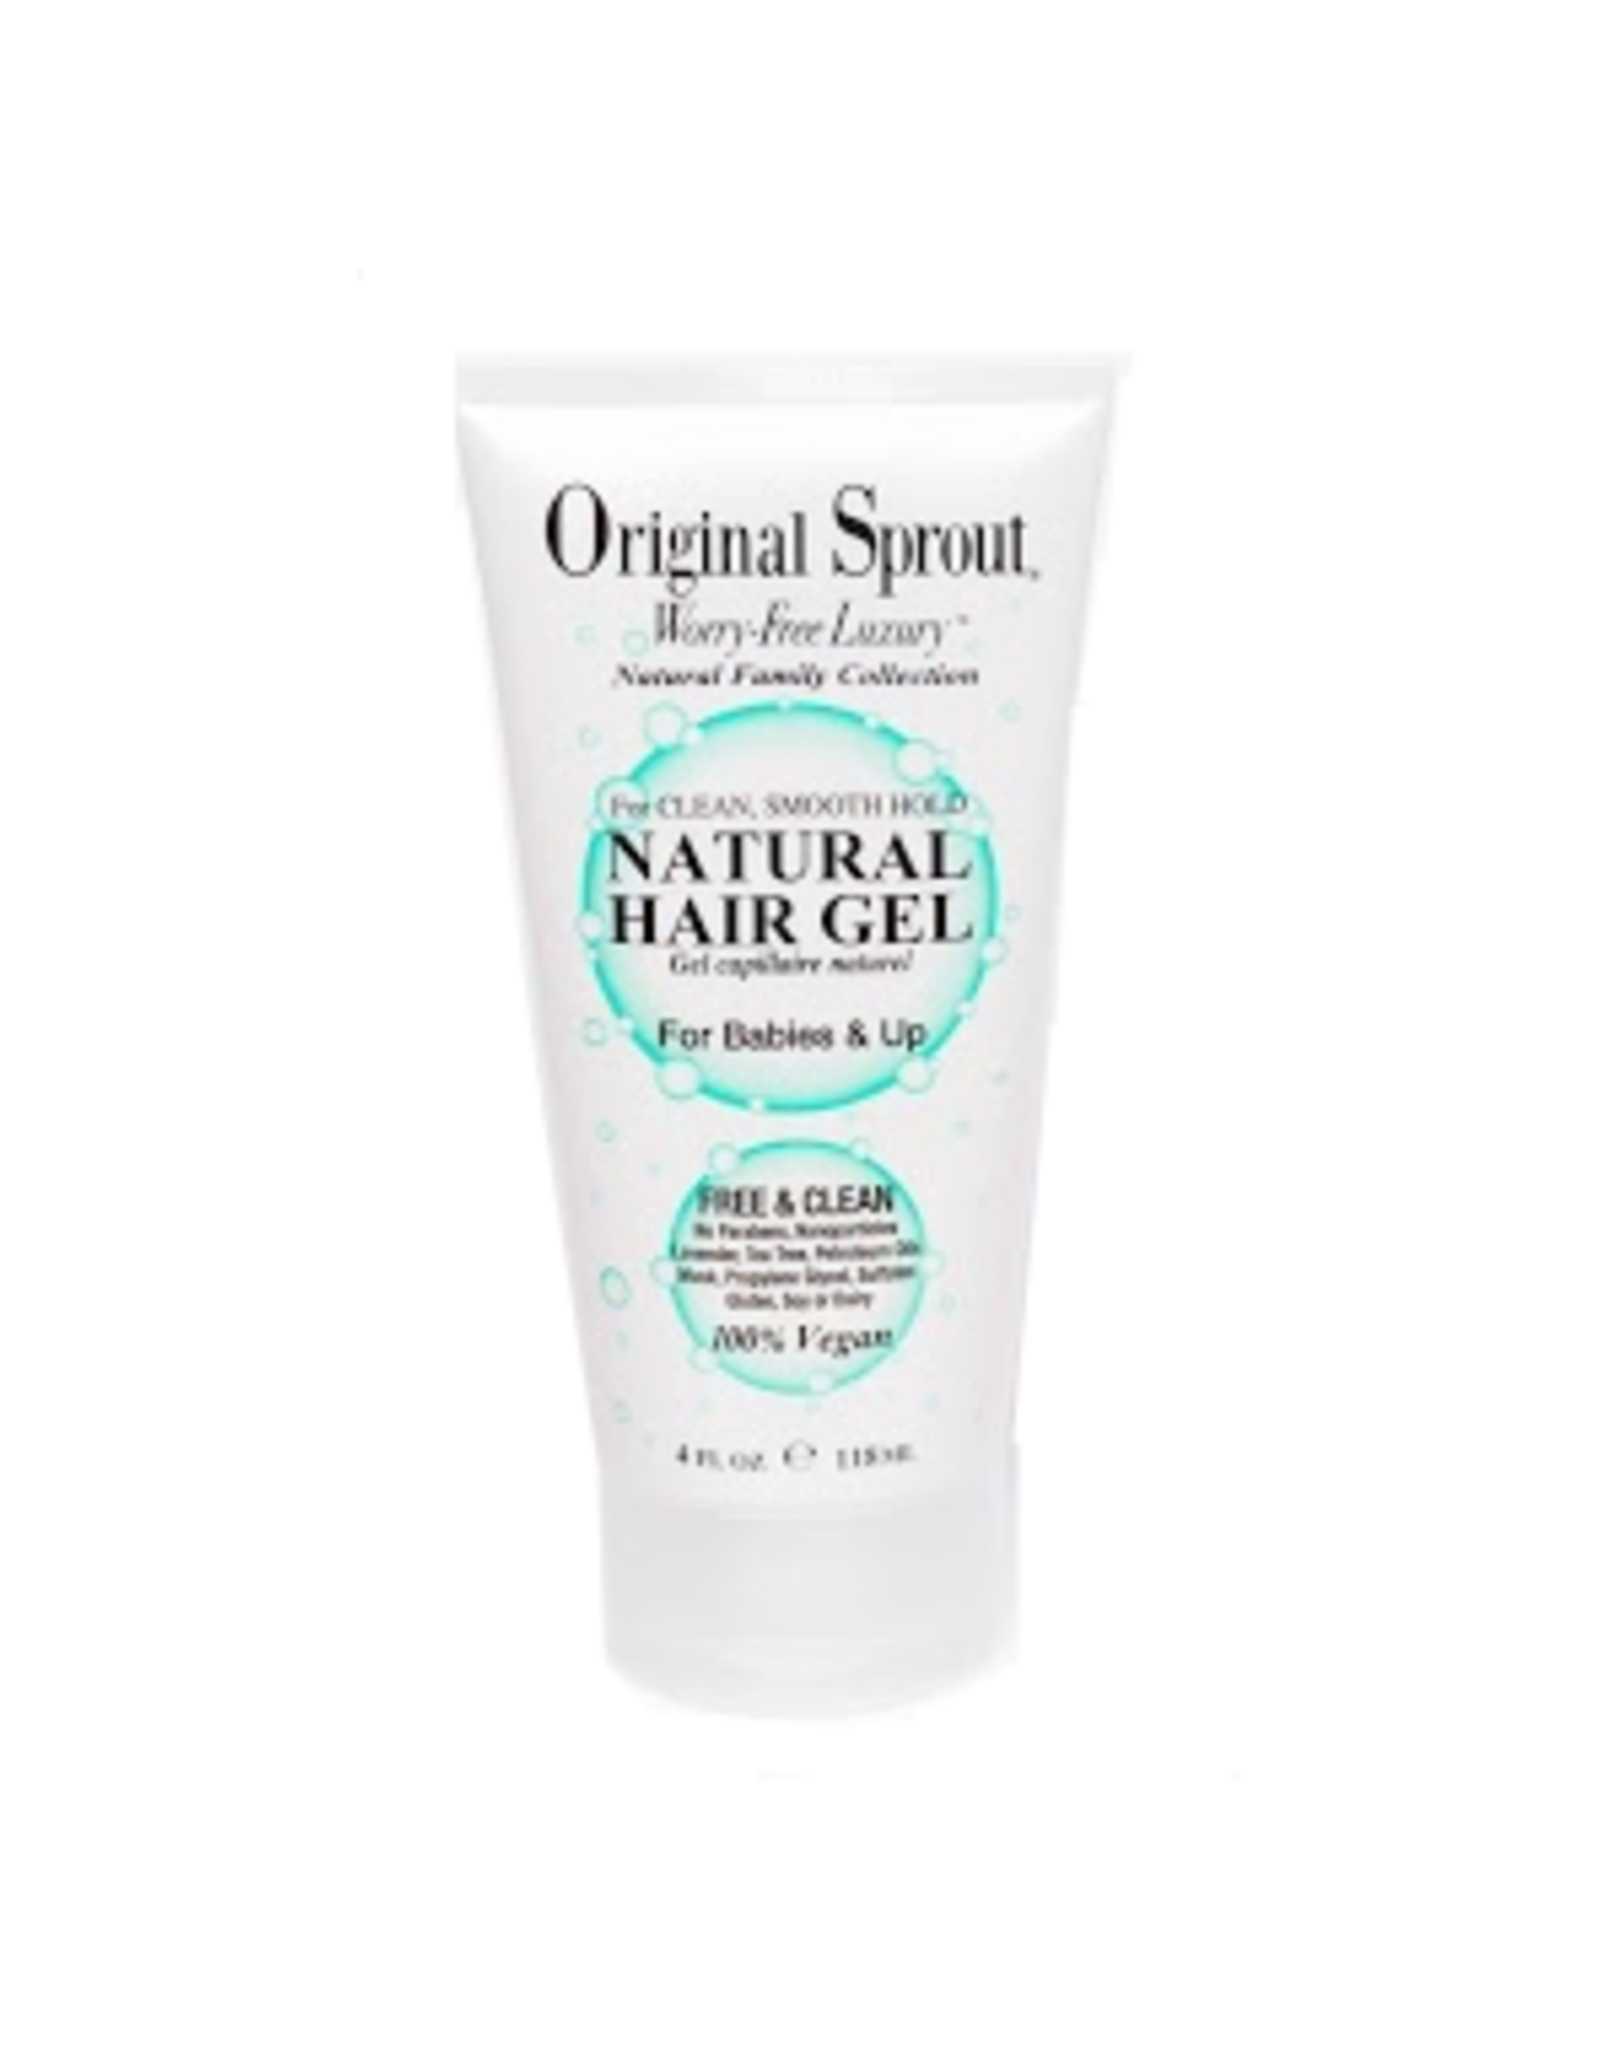 Original Sprout Original Sprout - Hair Gel